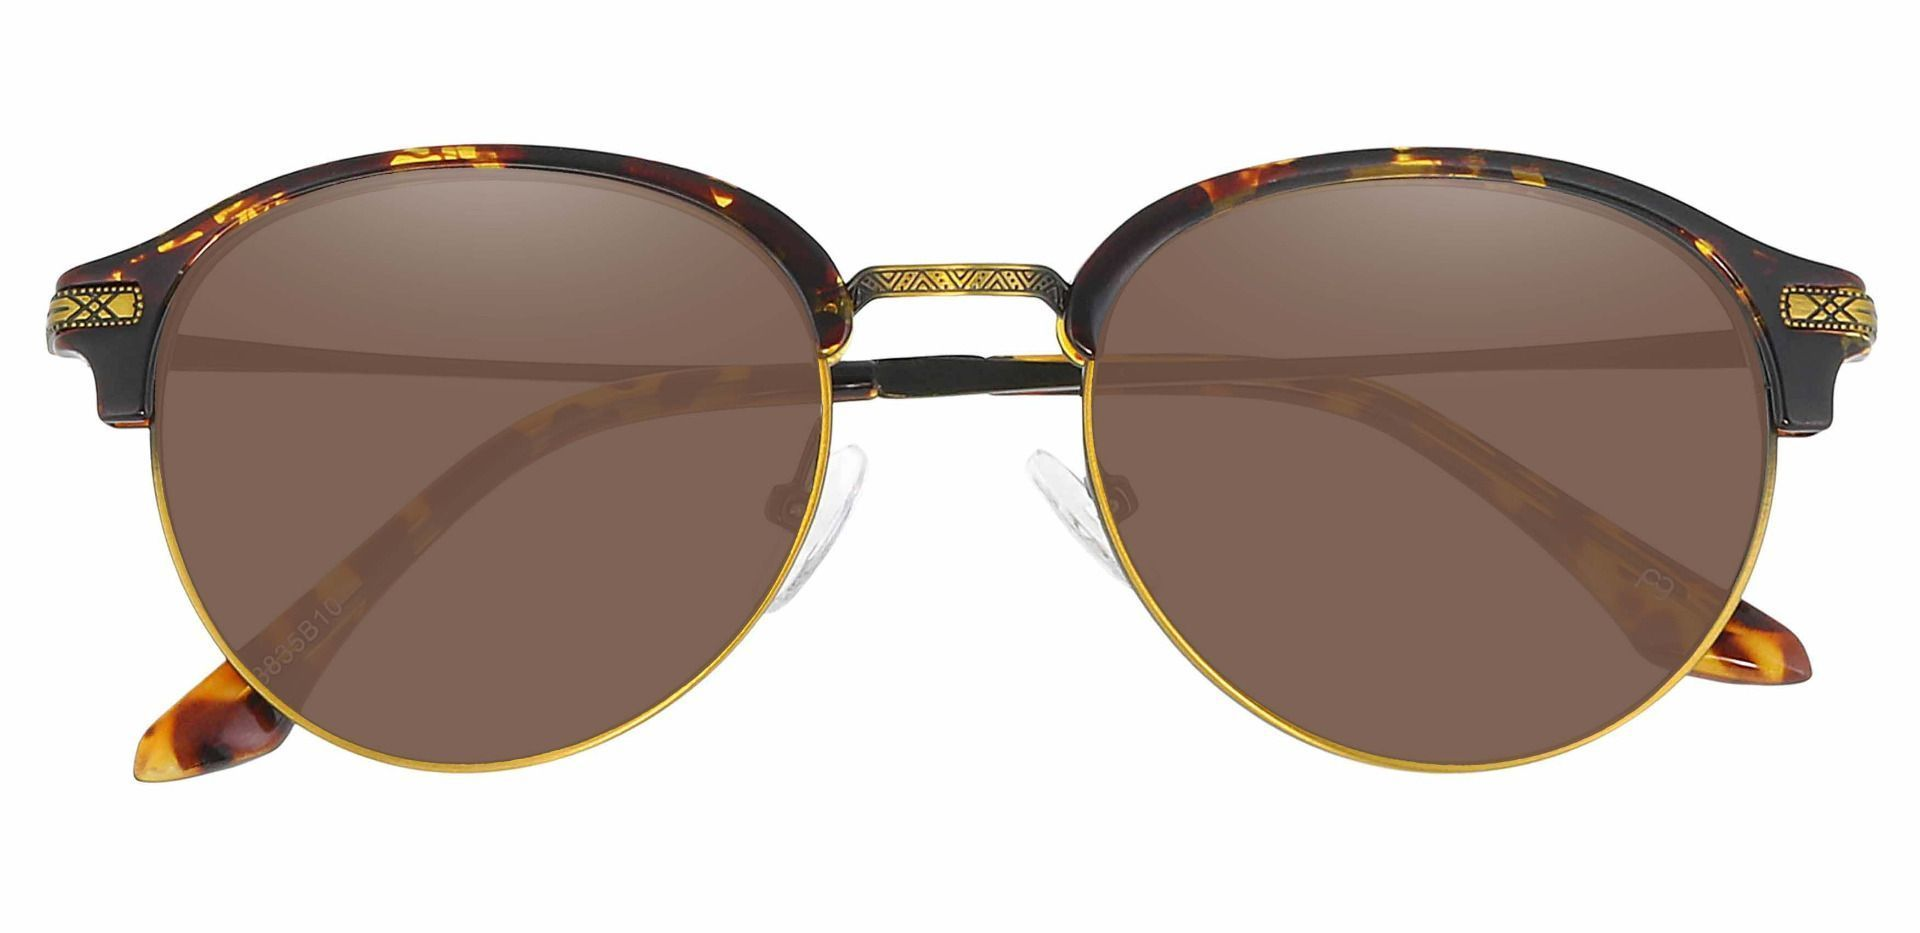 Akron Browline Lined Bifocal Sunglasses - Tortoise Frame With Brown Lenses